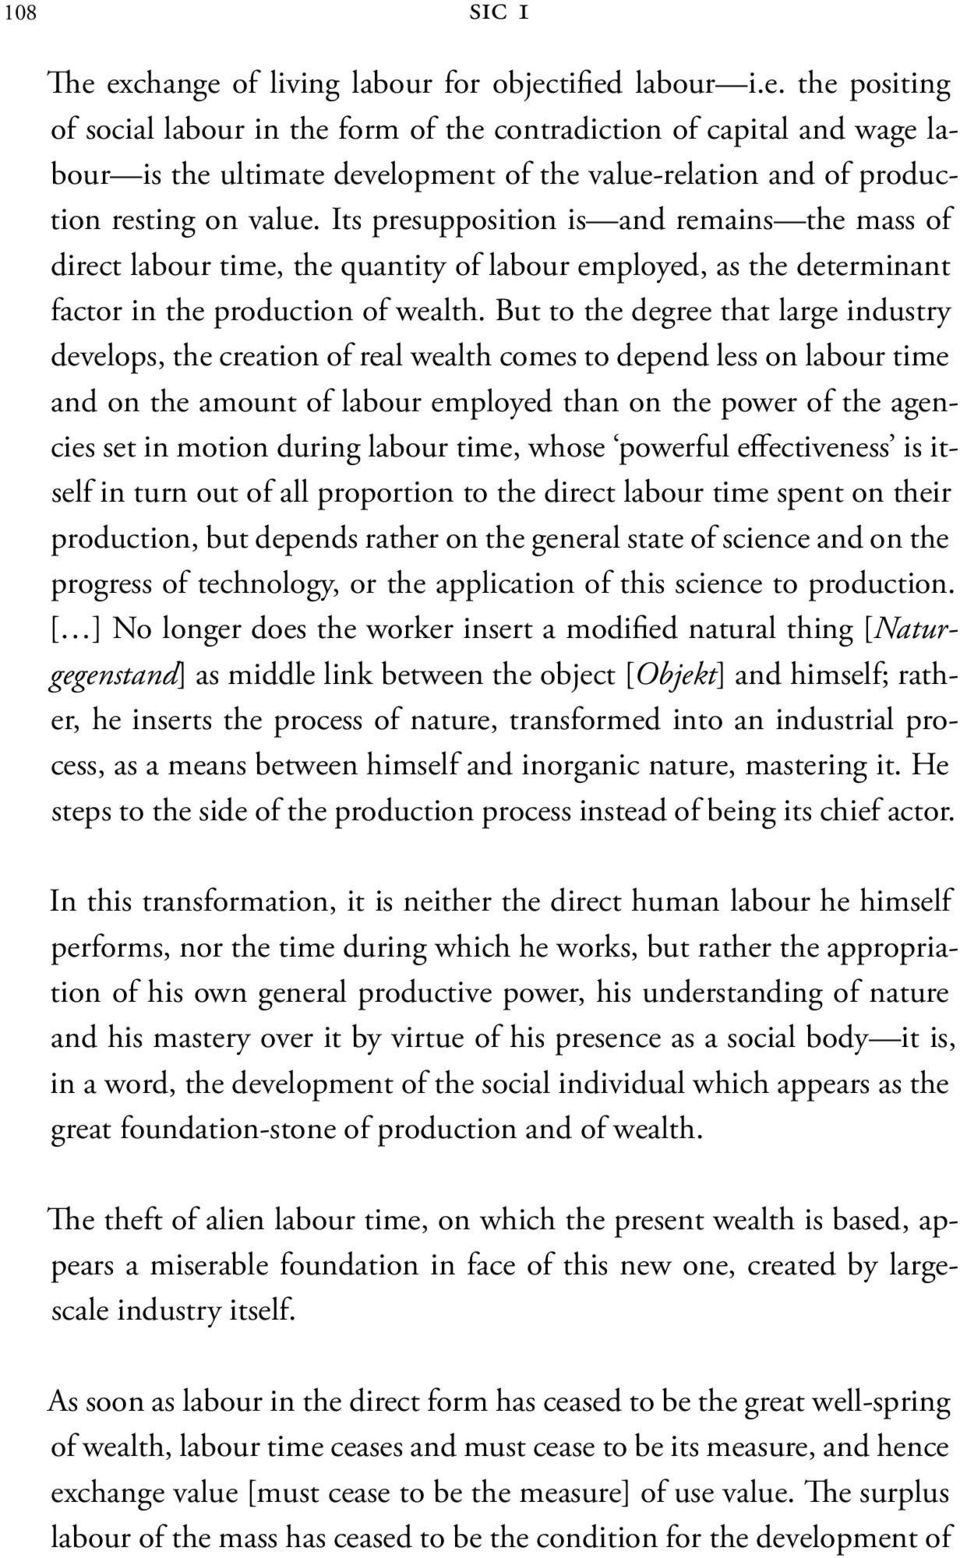 But to the degree that large industry develops, the creation of real wealth comes to depend less on labour time and on the amount of labour employed than on the power of the agencies set in motion